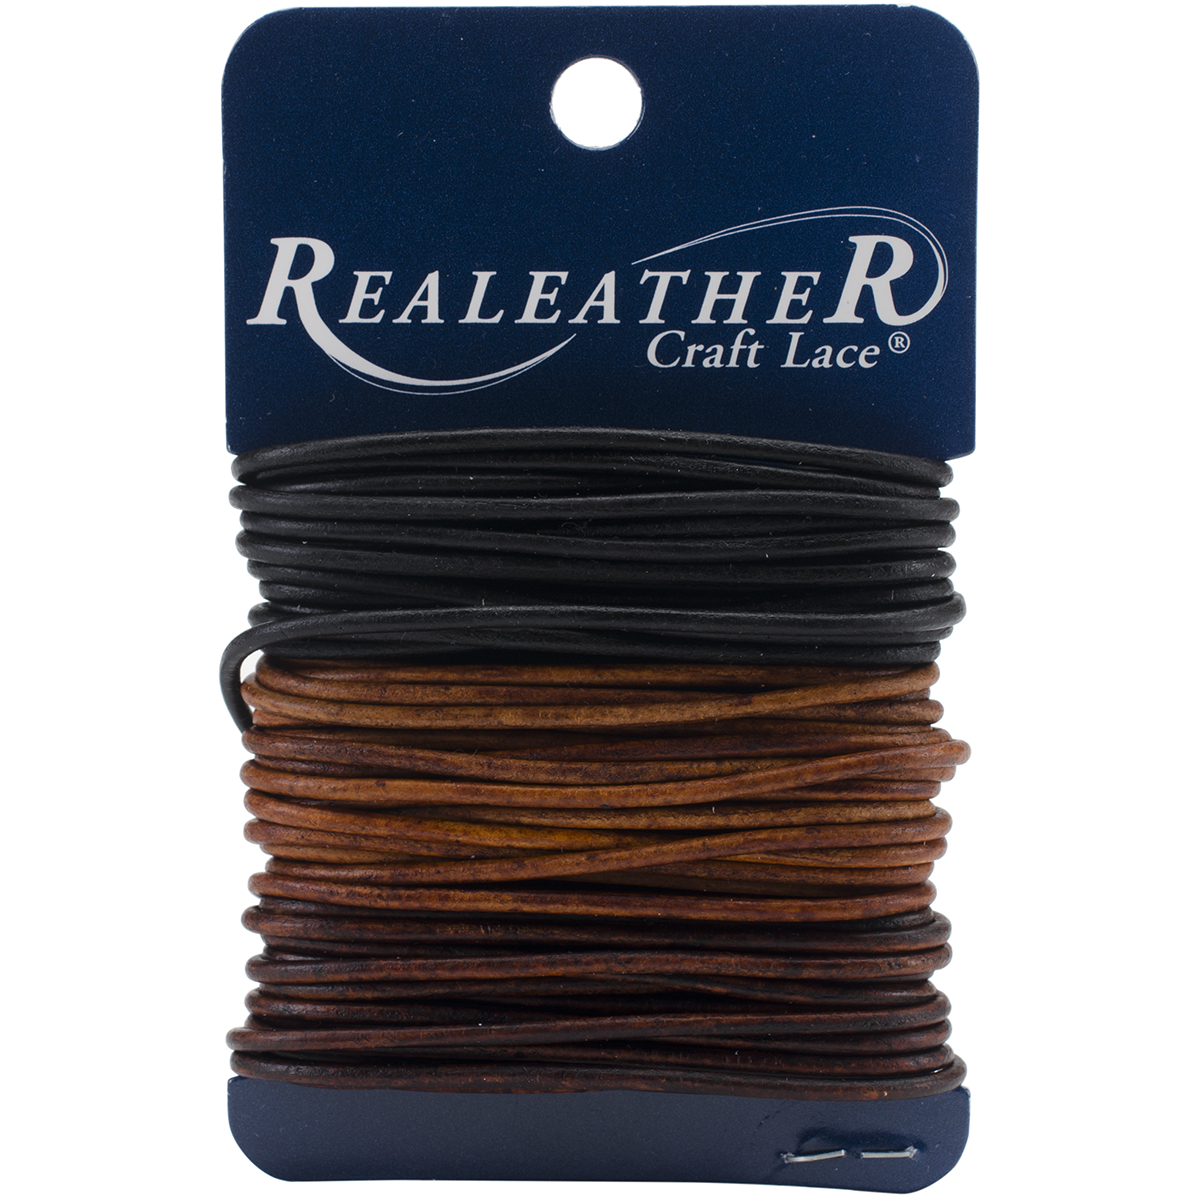 Realeather Crafts Round Leather Lace 2mmX8yd Carded-Ebony, Cedar & Mahogany